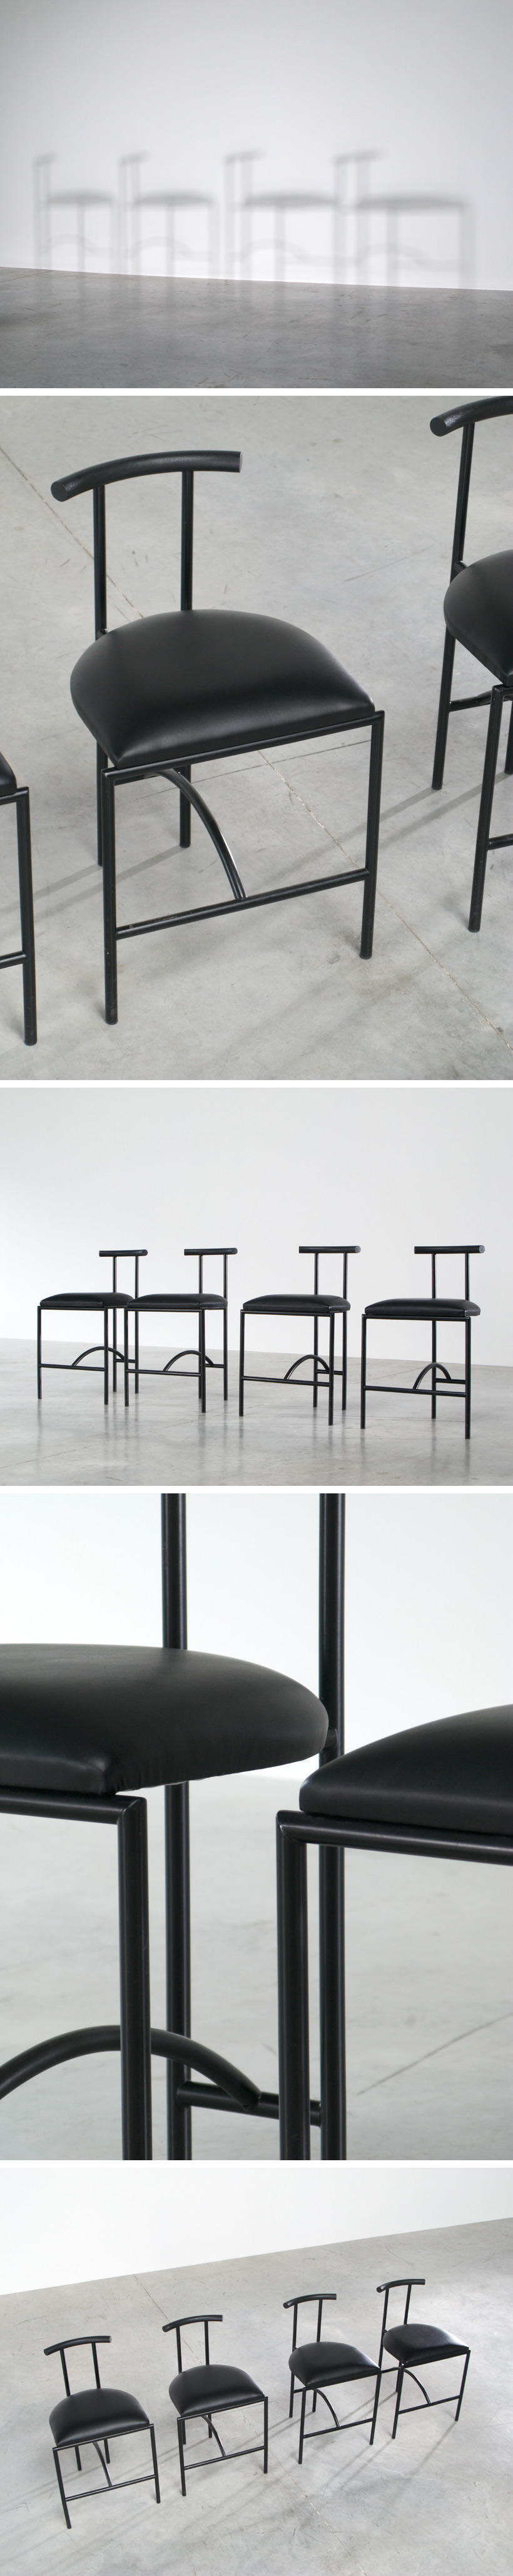 Rodney Kinsman 4 Tokyo dinning chairs Large